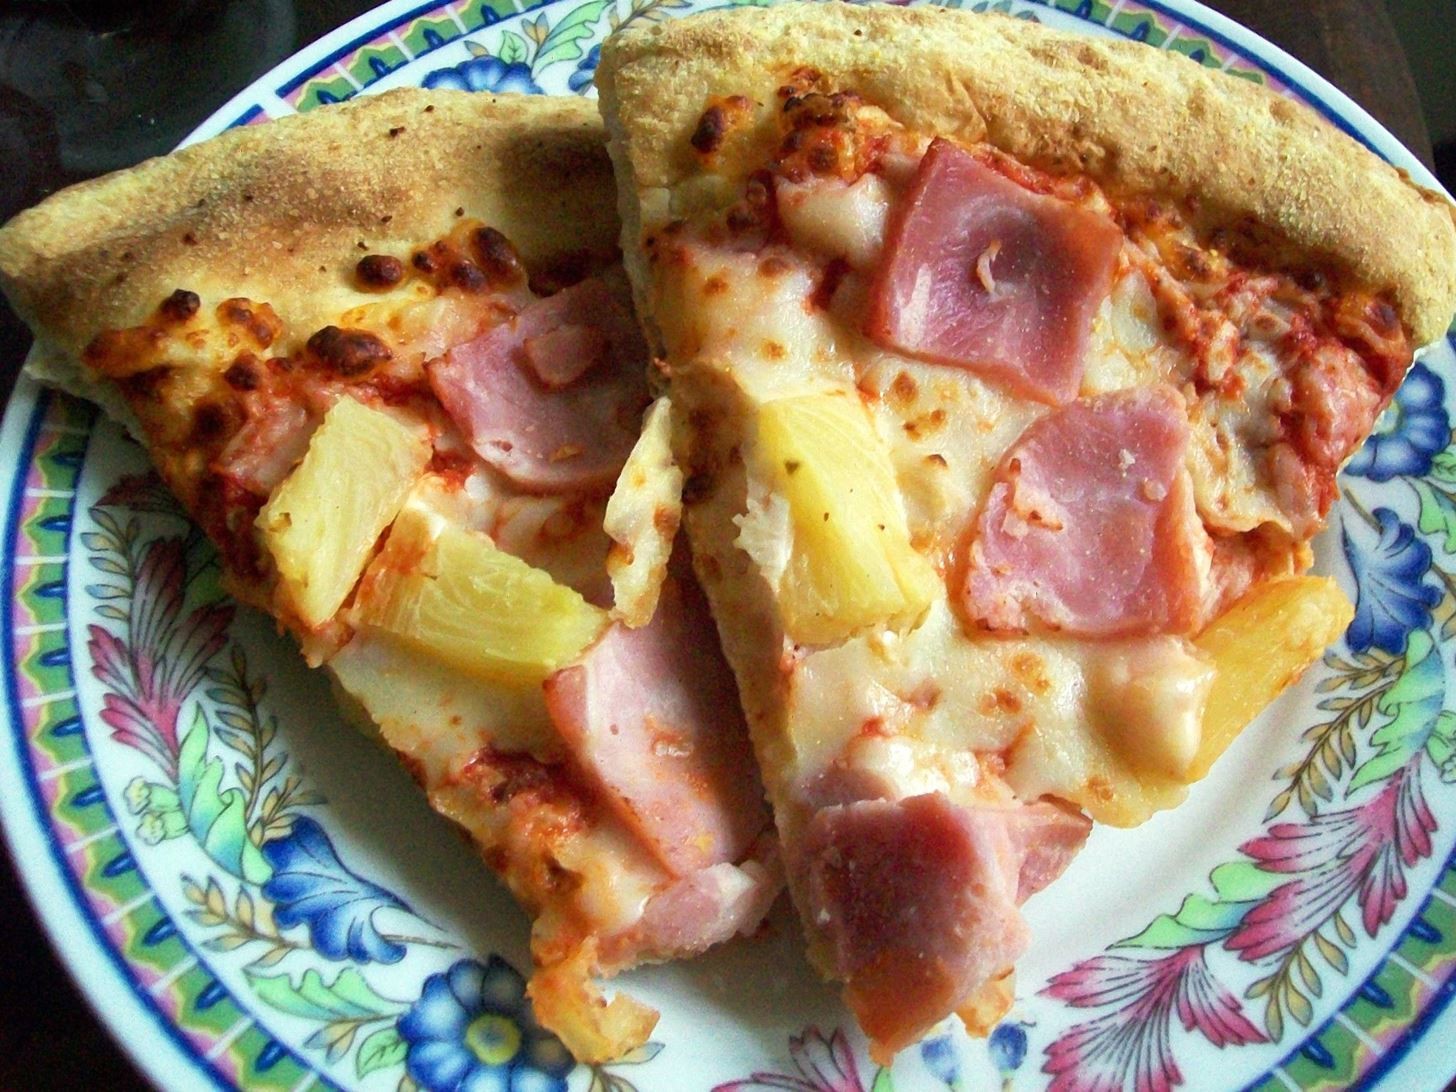 Leftover Pizza Should Never Go in the Fridge [DEBATE]